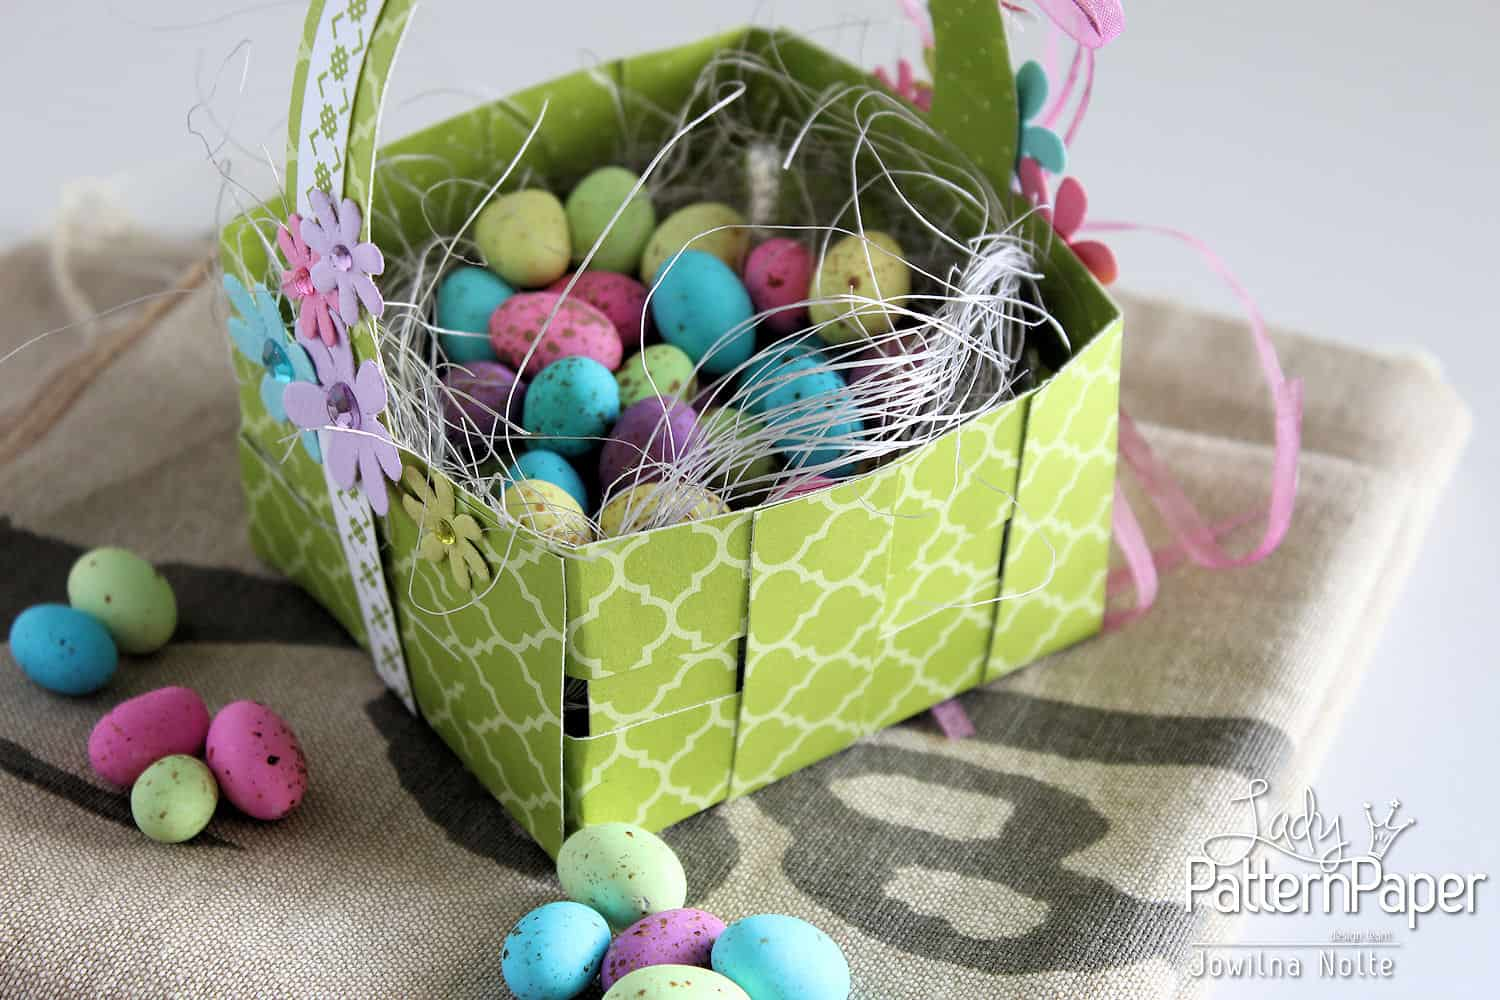 How To Weave A Simple Easter Basket : Woven easter basket easy step by lady pattern